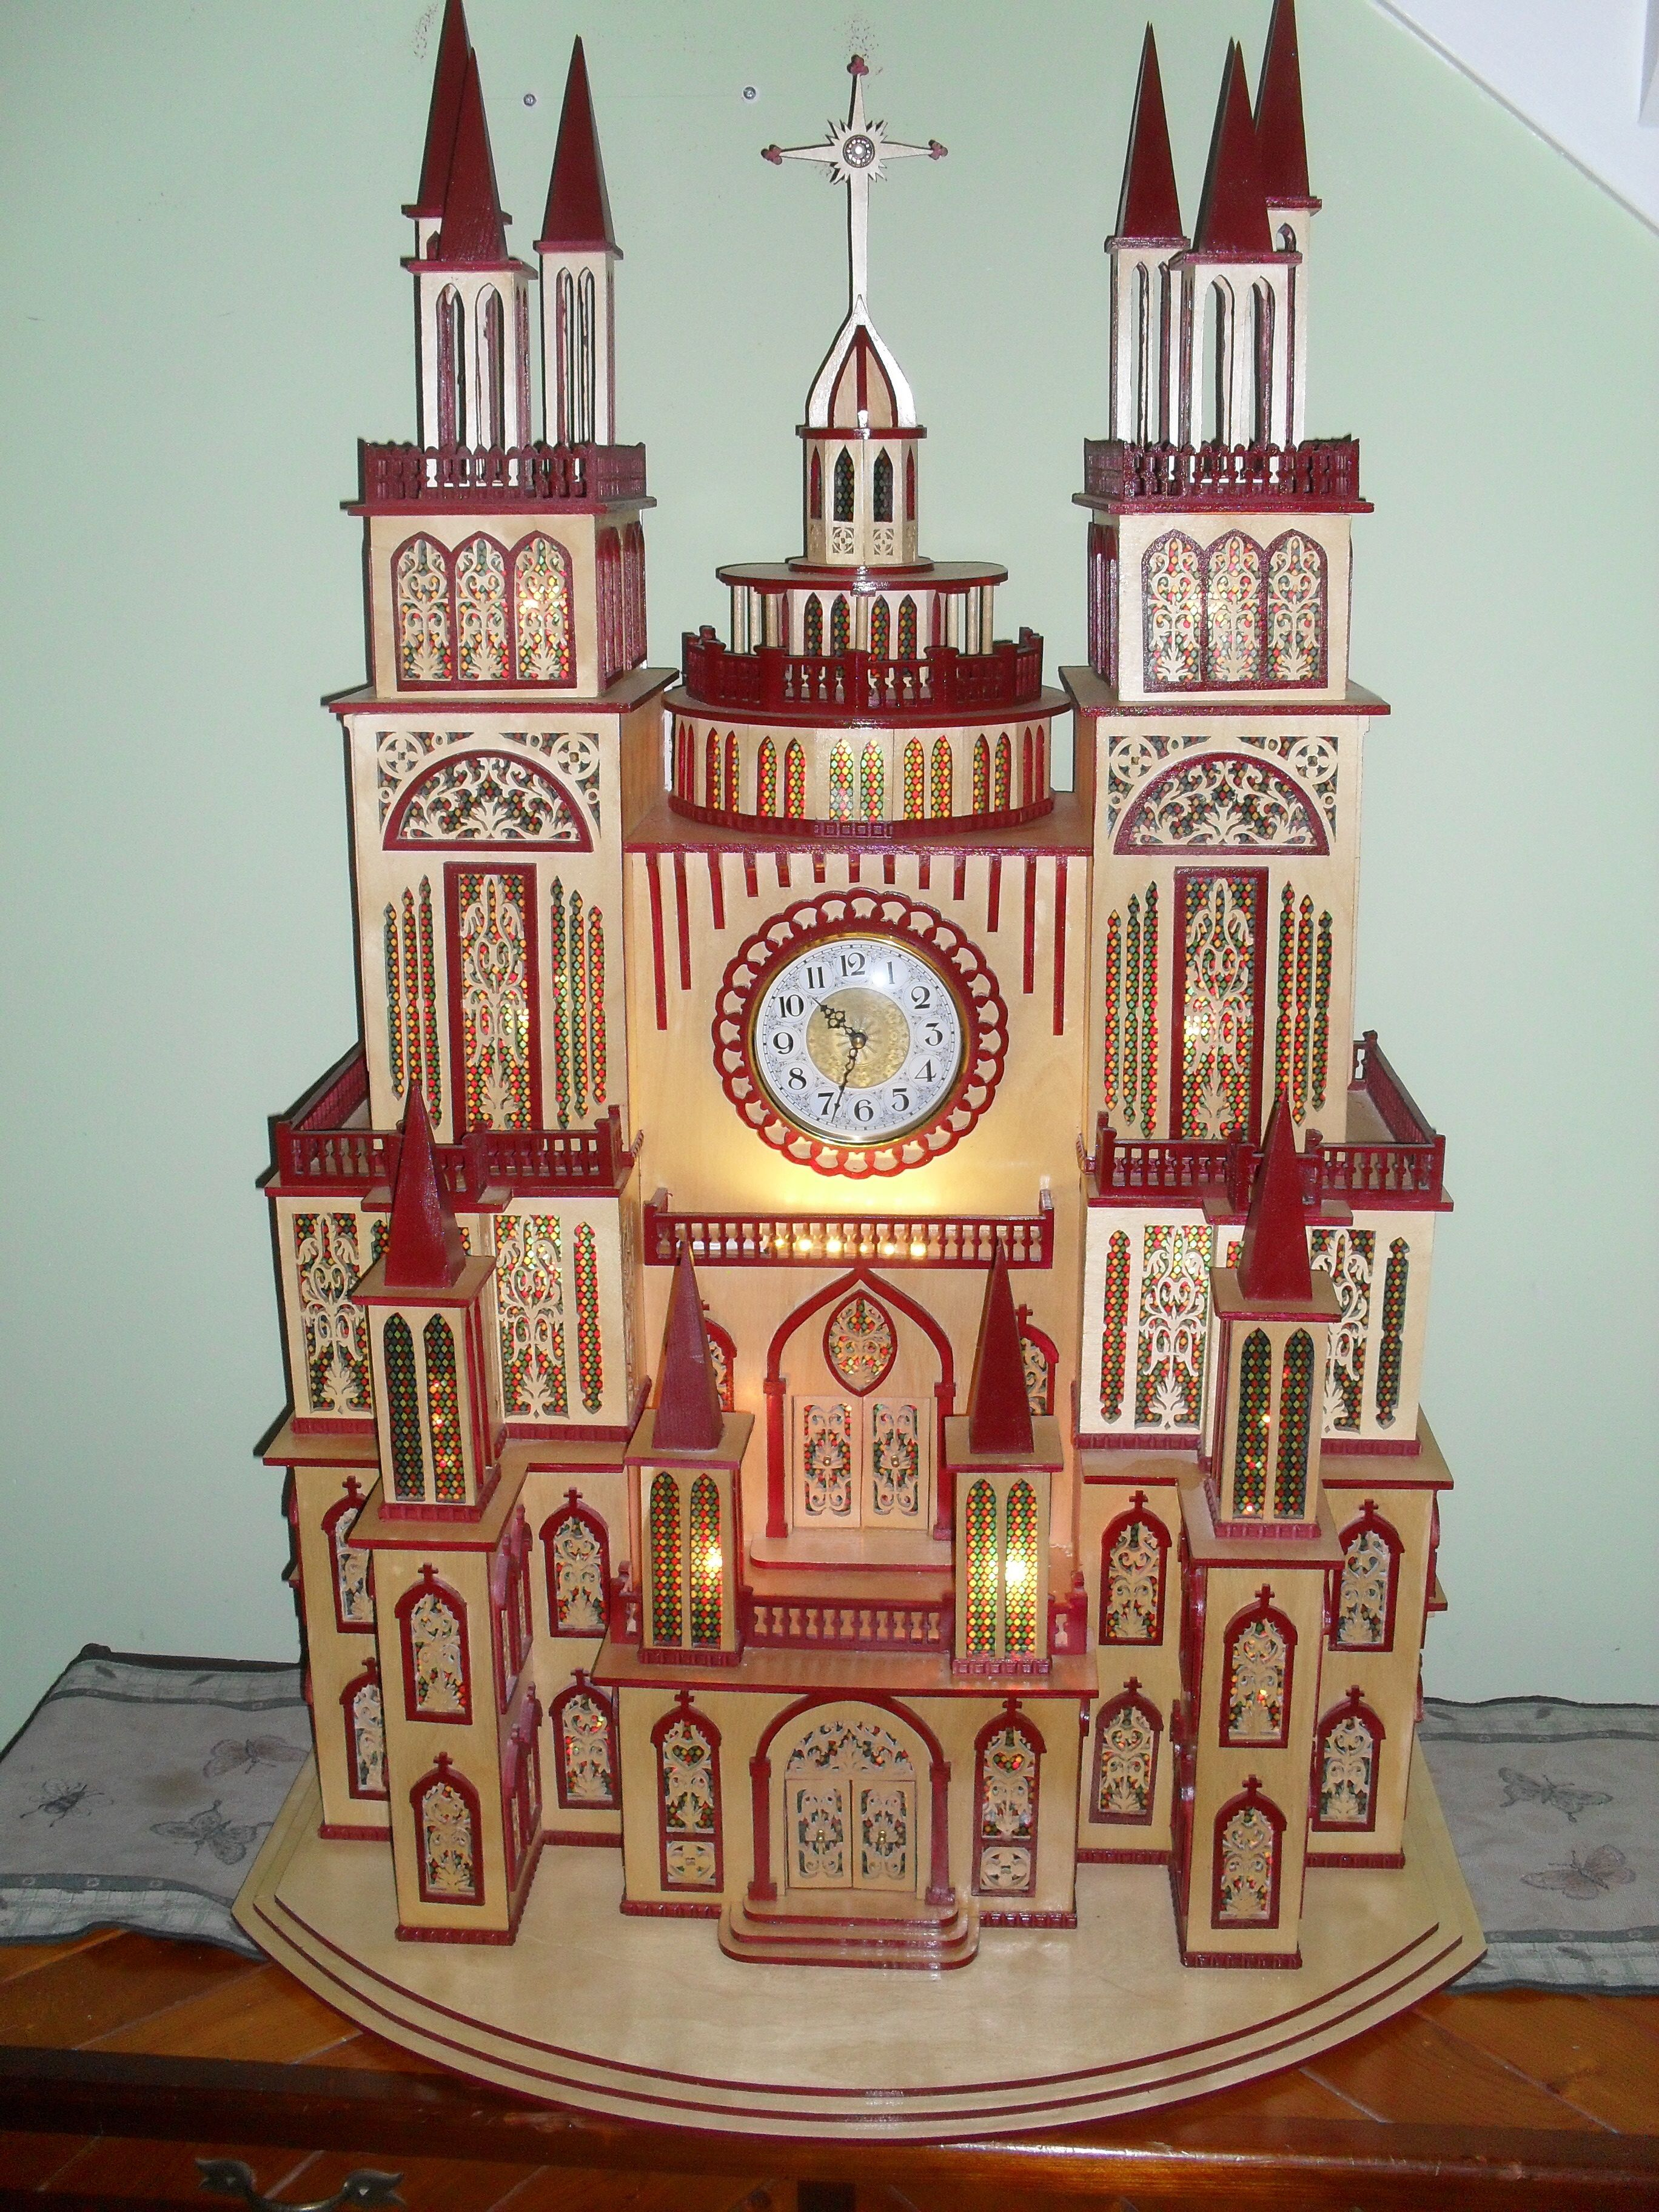 "Shopiere Cathedral Clock     Hand crafted from Baltic Birch, 70 framed windows, 4 doors, and 10 spires with a center rotunda. Over 460 pieces sanded and fitted pieces with 3600 insided cuts hand painted with a satin finish.   Dimentions  44"" high 30 "" wide and 19"" deep"